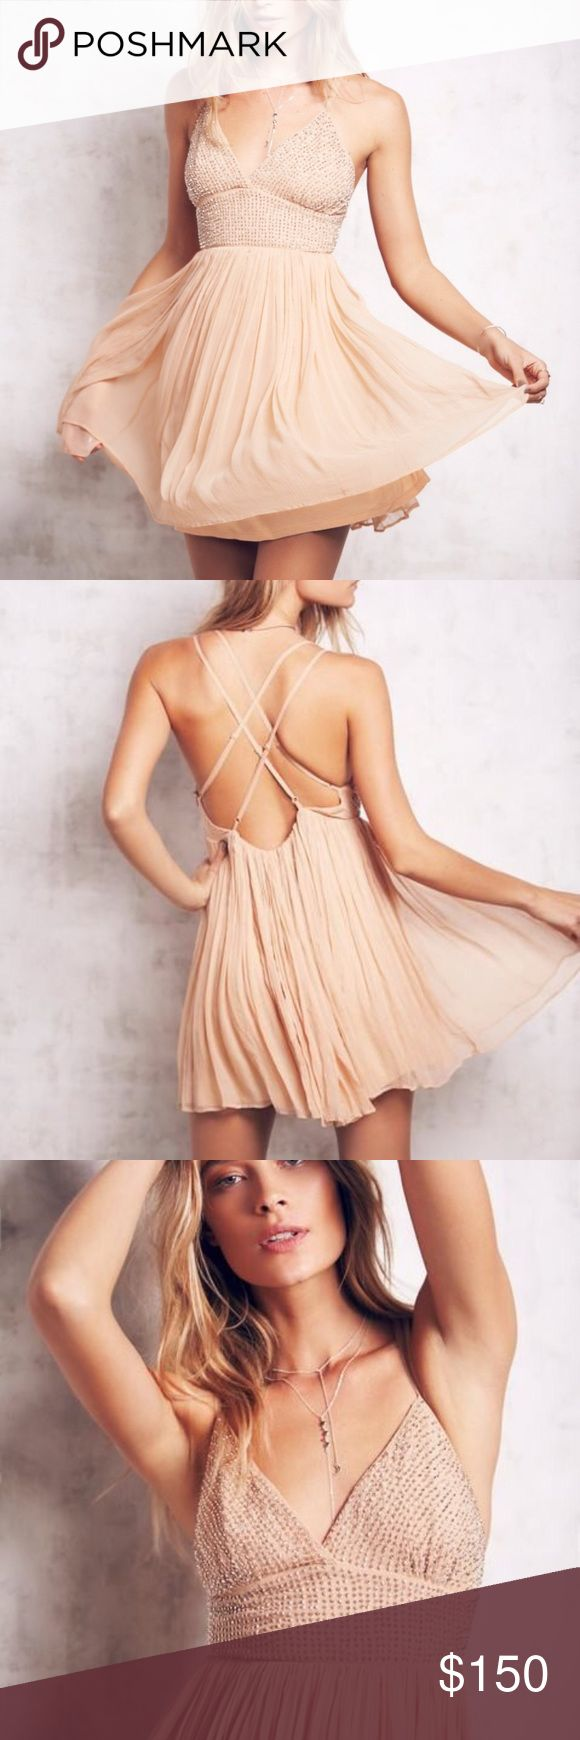 """""""Like A Diamond Dress"""" from Free People Pretty peach/ pinkish cream color with a silver beaded top. Great for parties and events like prom. In perfect condition. Wore one time only. No longer available on FP's website or in stores. Free People Dresses Mini"""